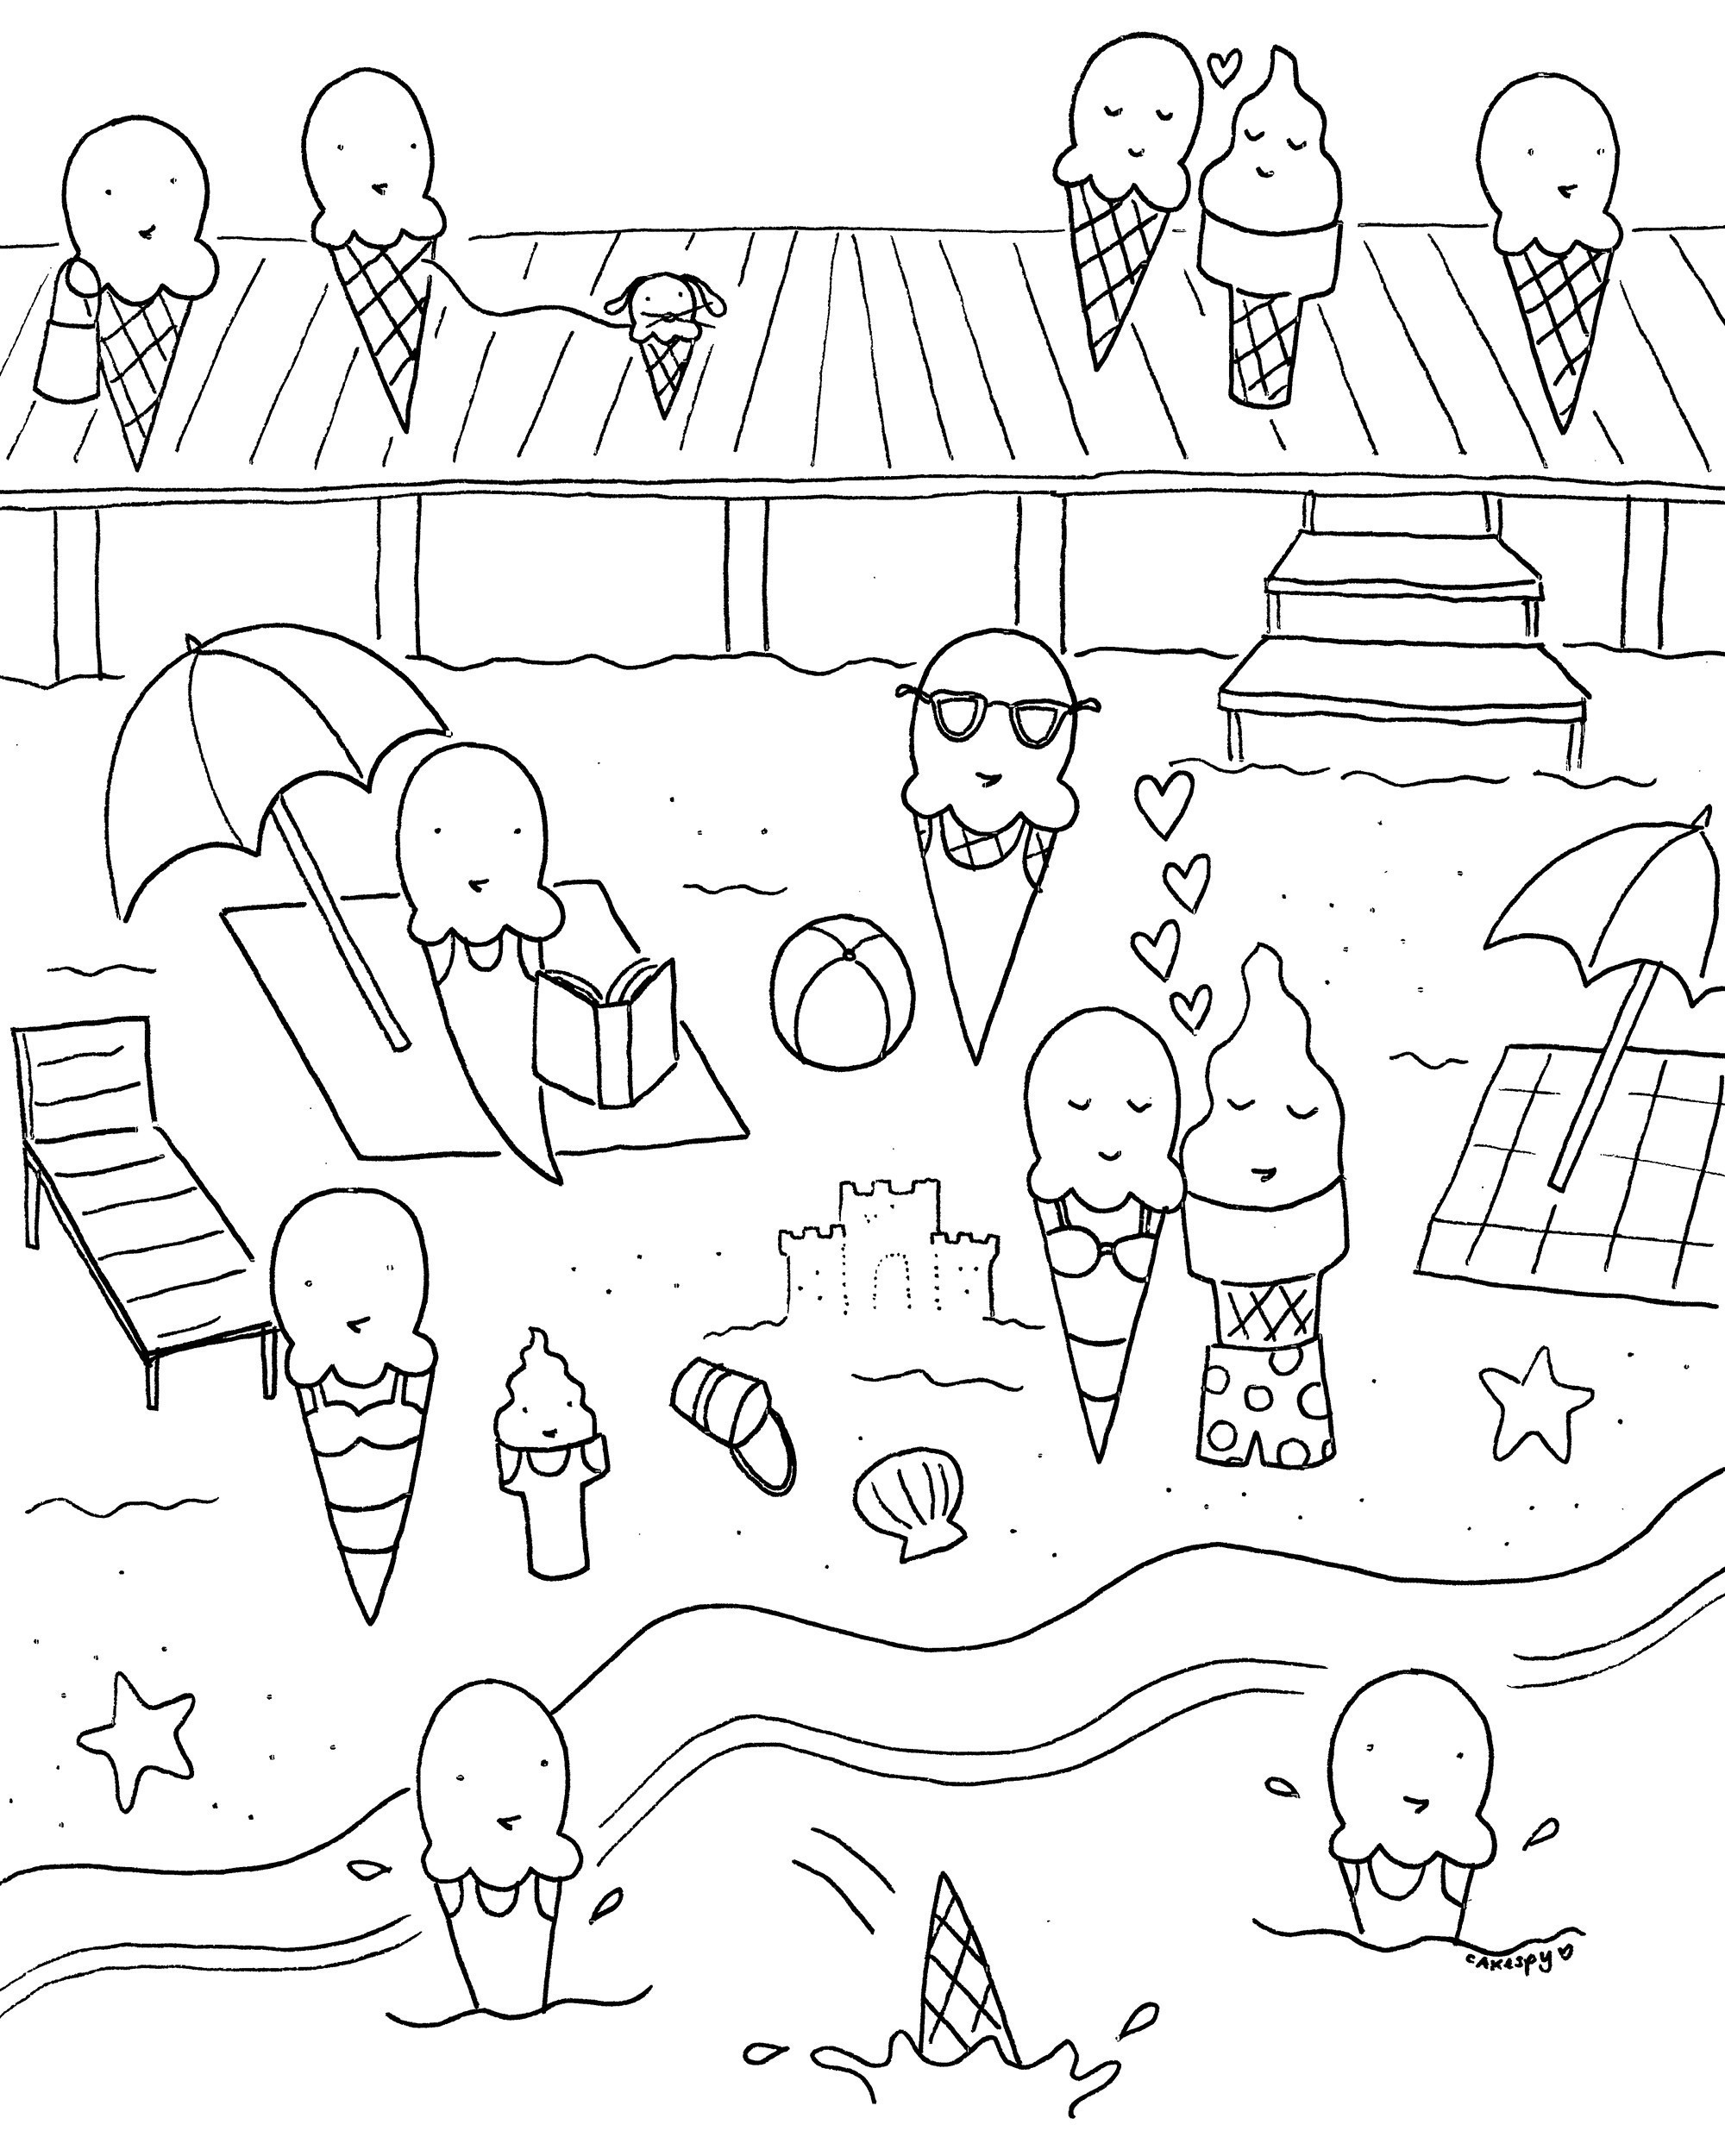 Beach Coloring Pages To Print New Free Printable Summer Coloring - Free Printable Summer Coloring Pages For Adults